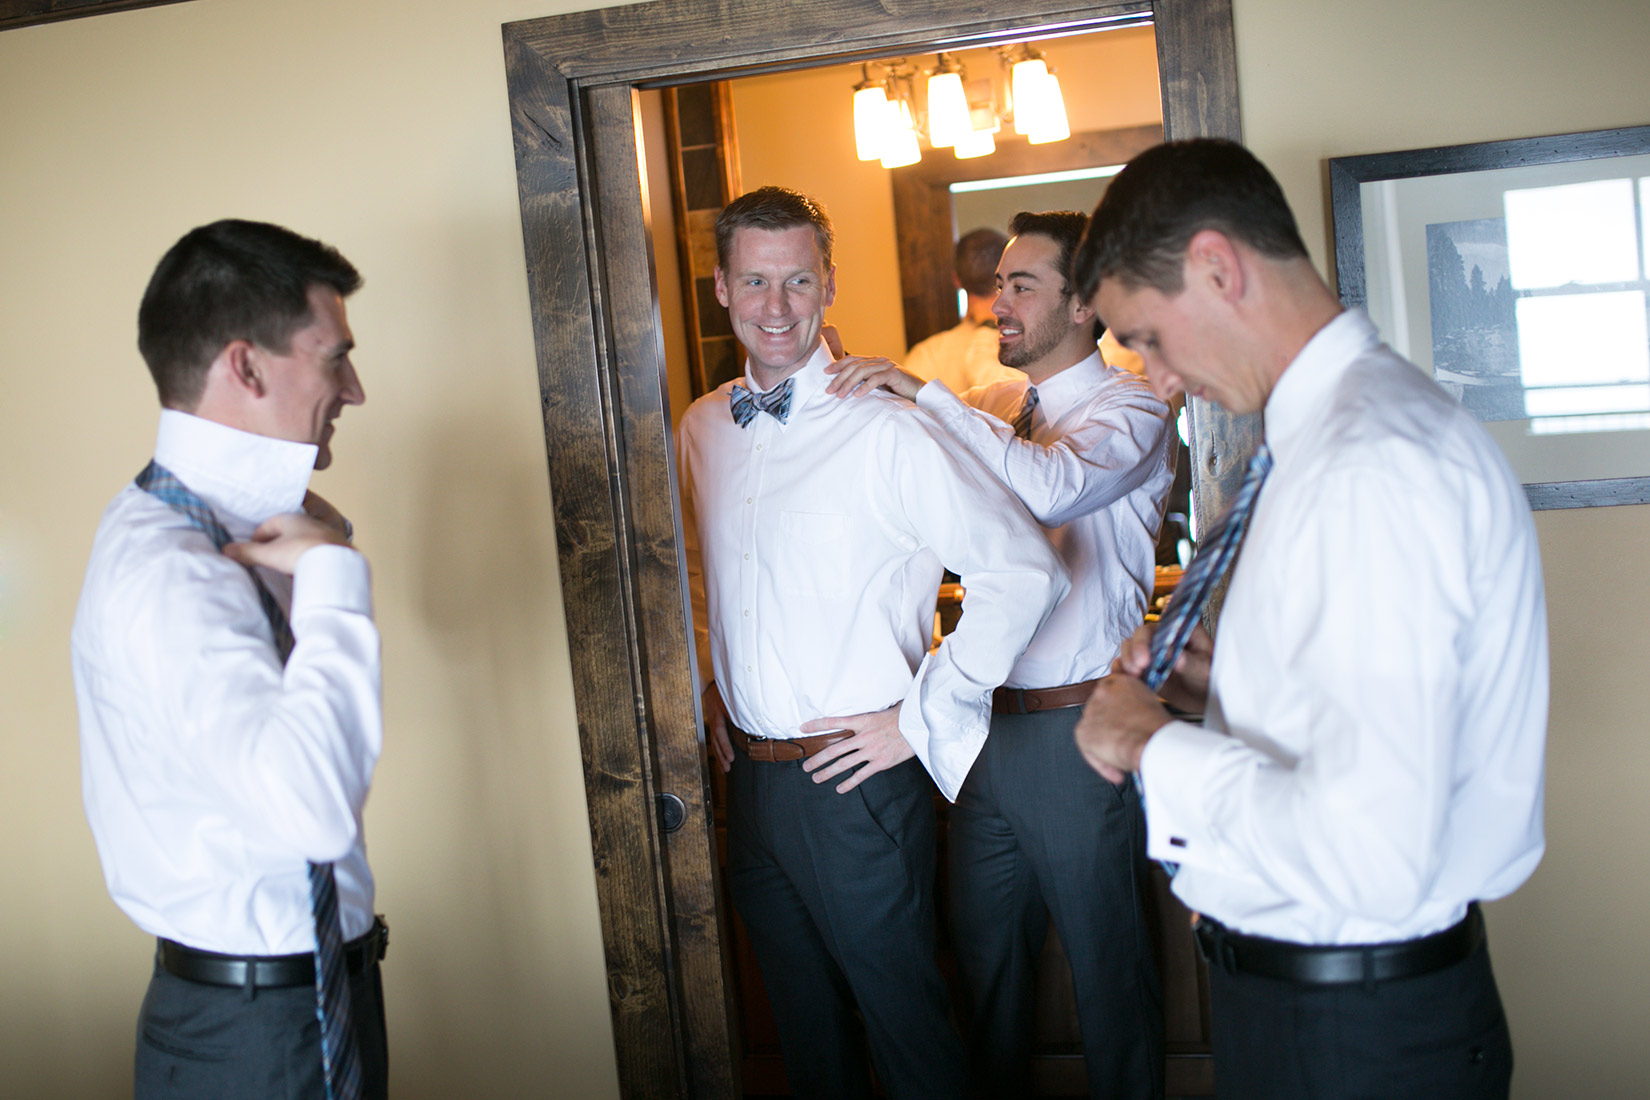 groom-wedding-West-Tahoe